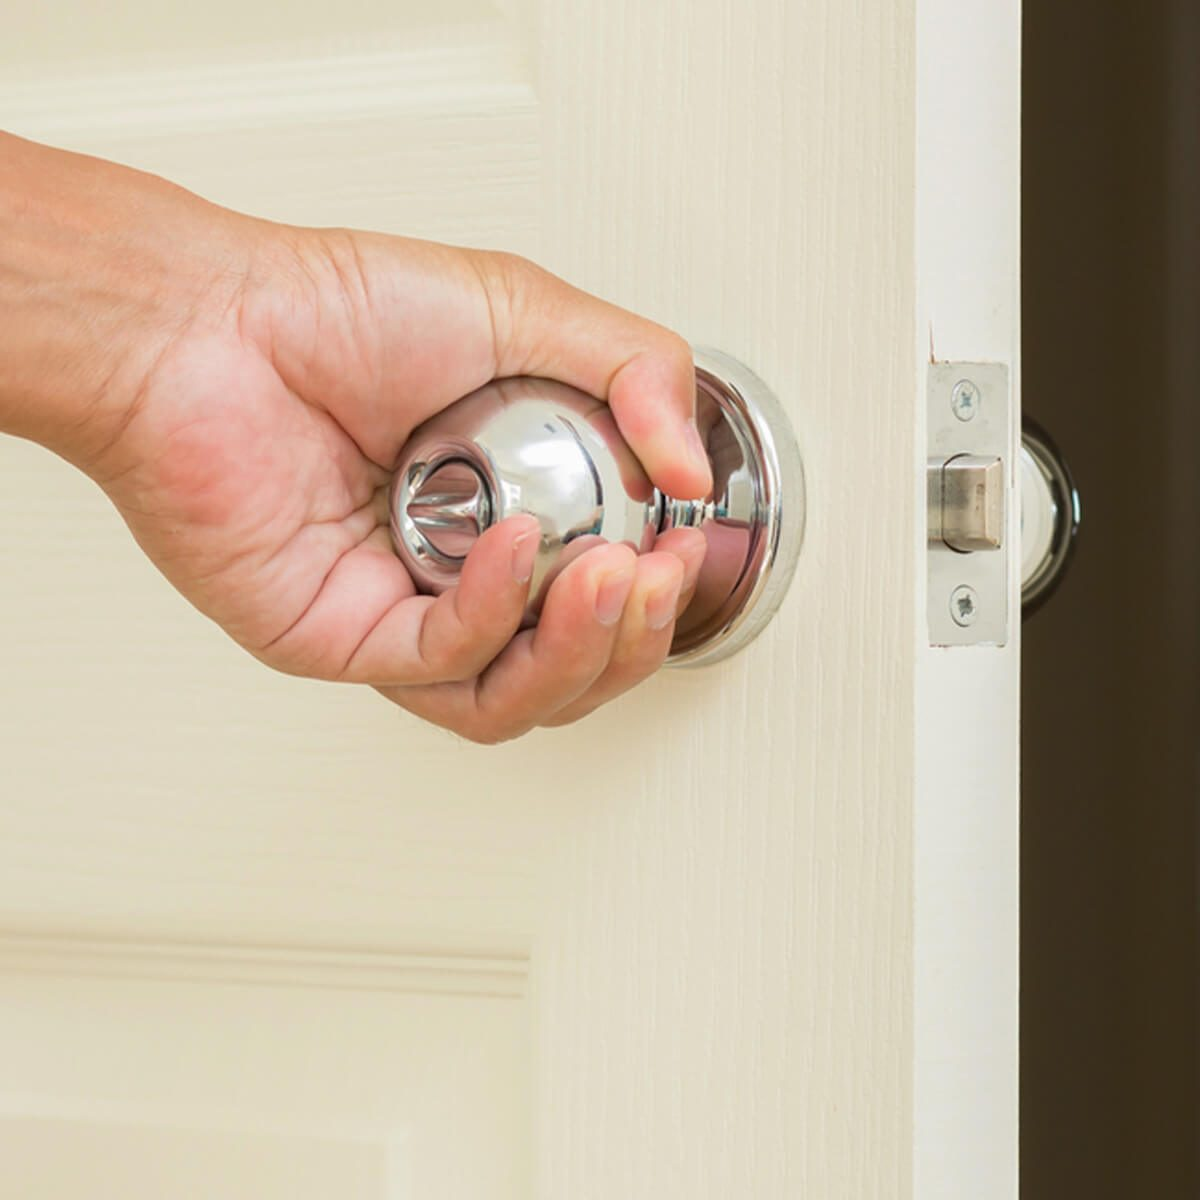 Door Knobs and Light Switches